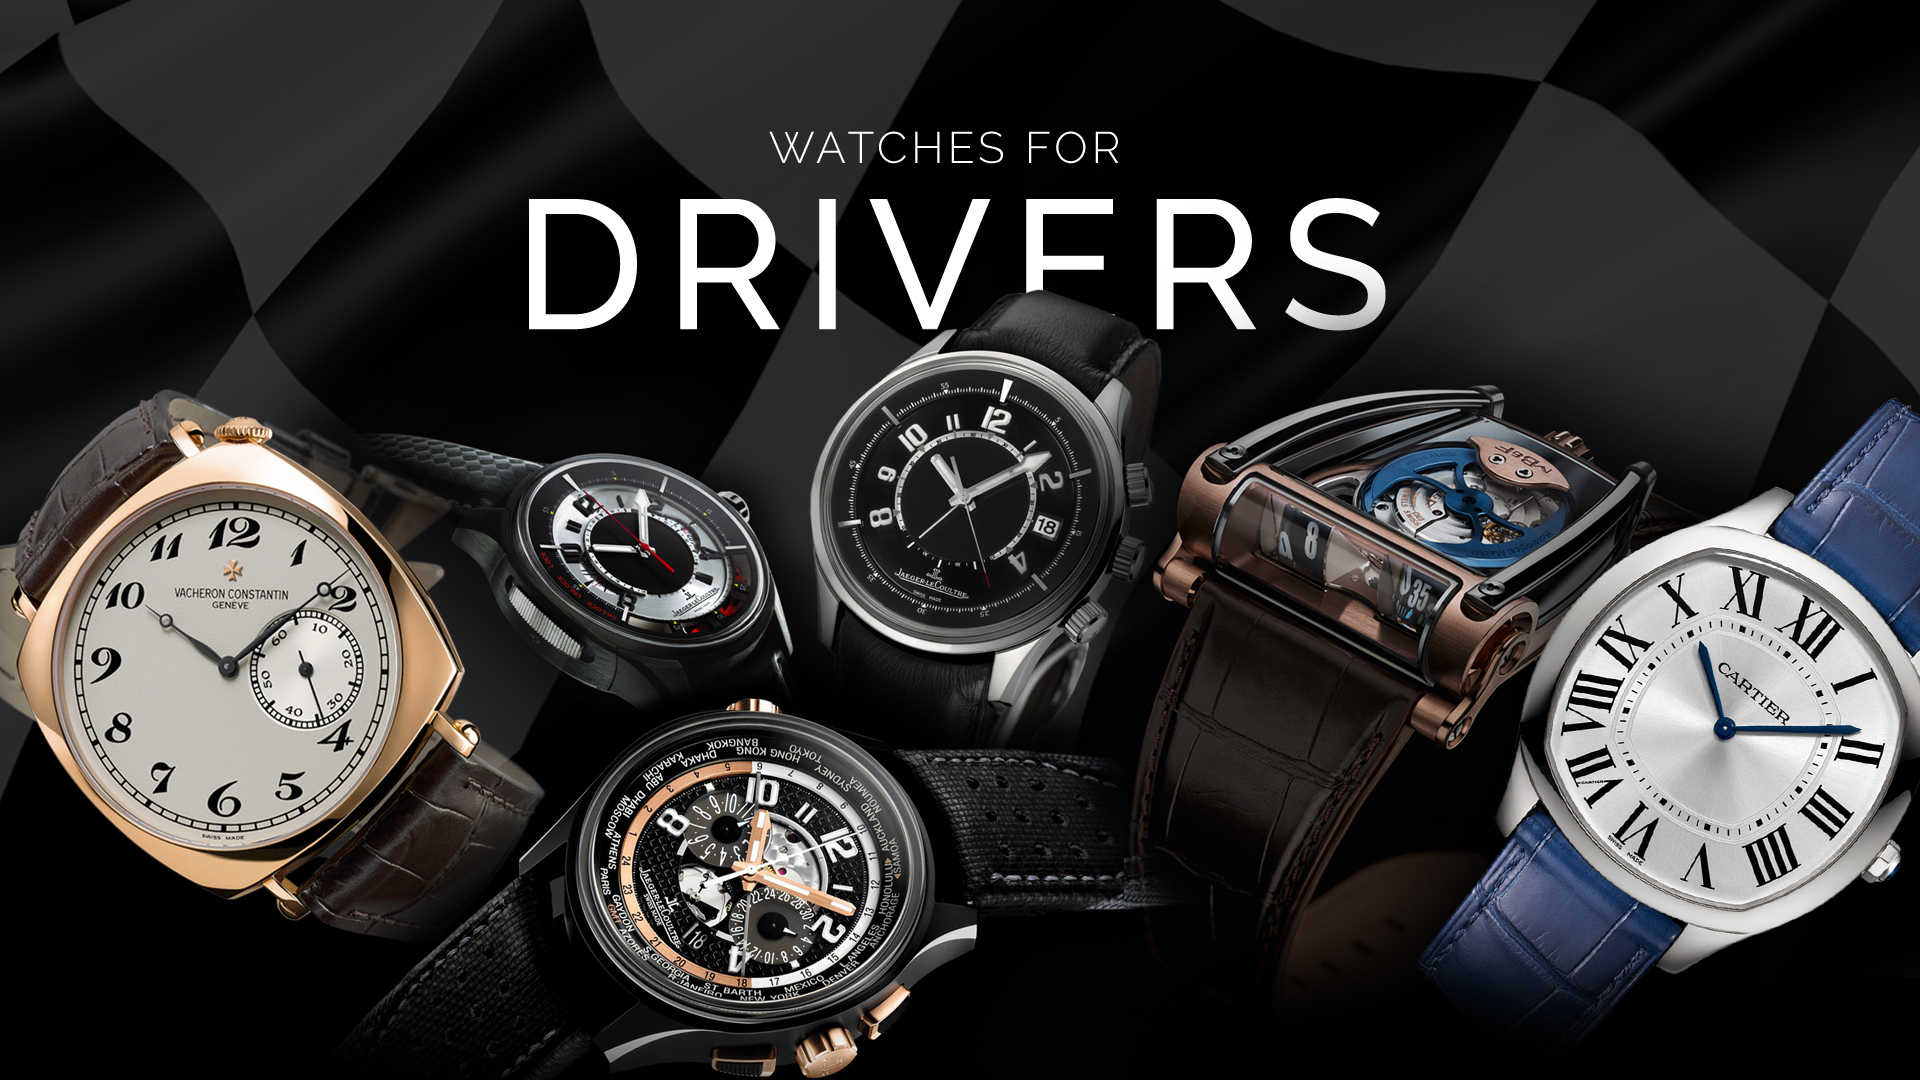 Motorsport series — Watches For Drivers